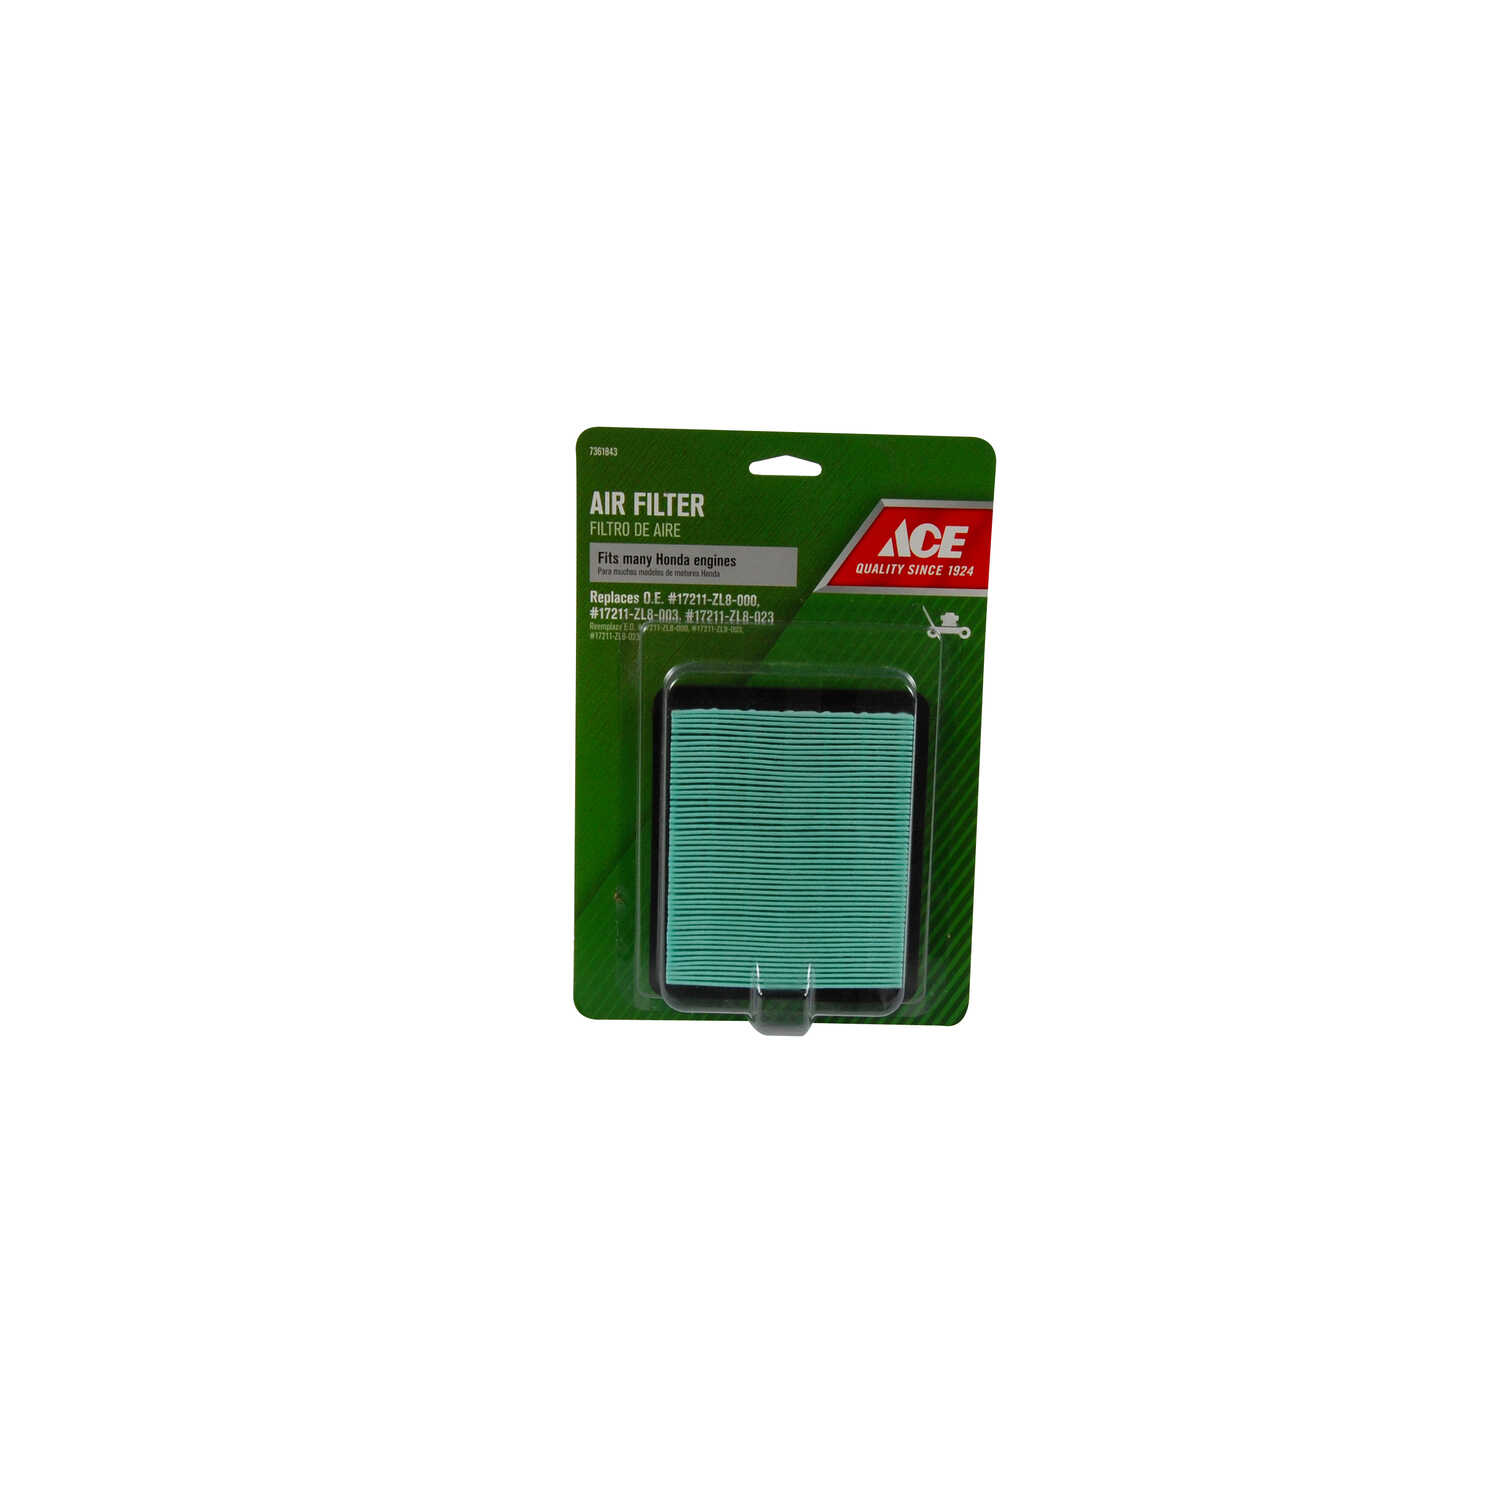 Ace Small Engine Air Filter - Ace Hardware